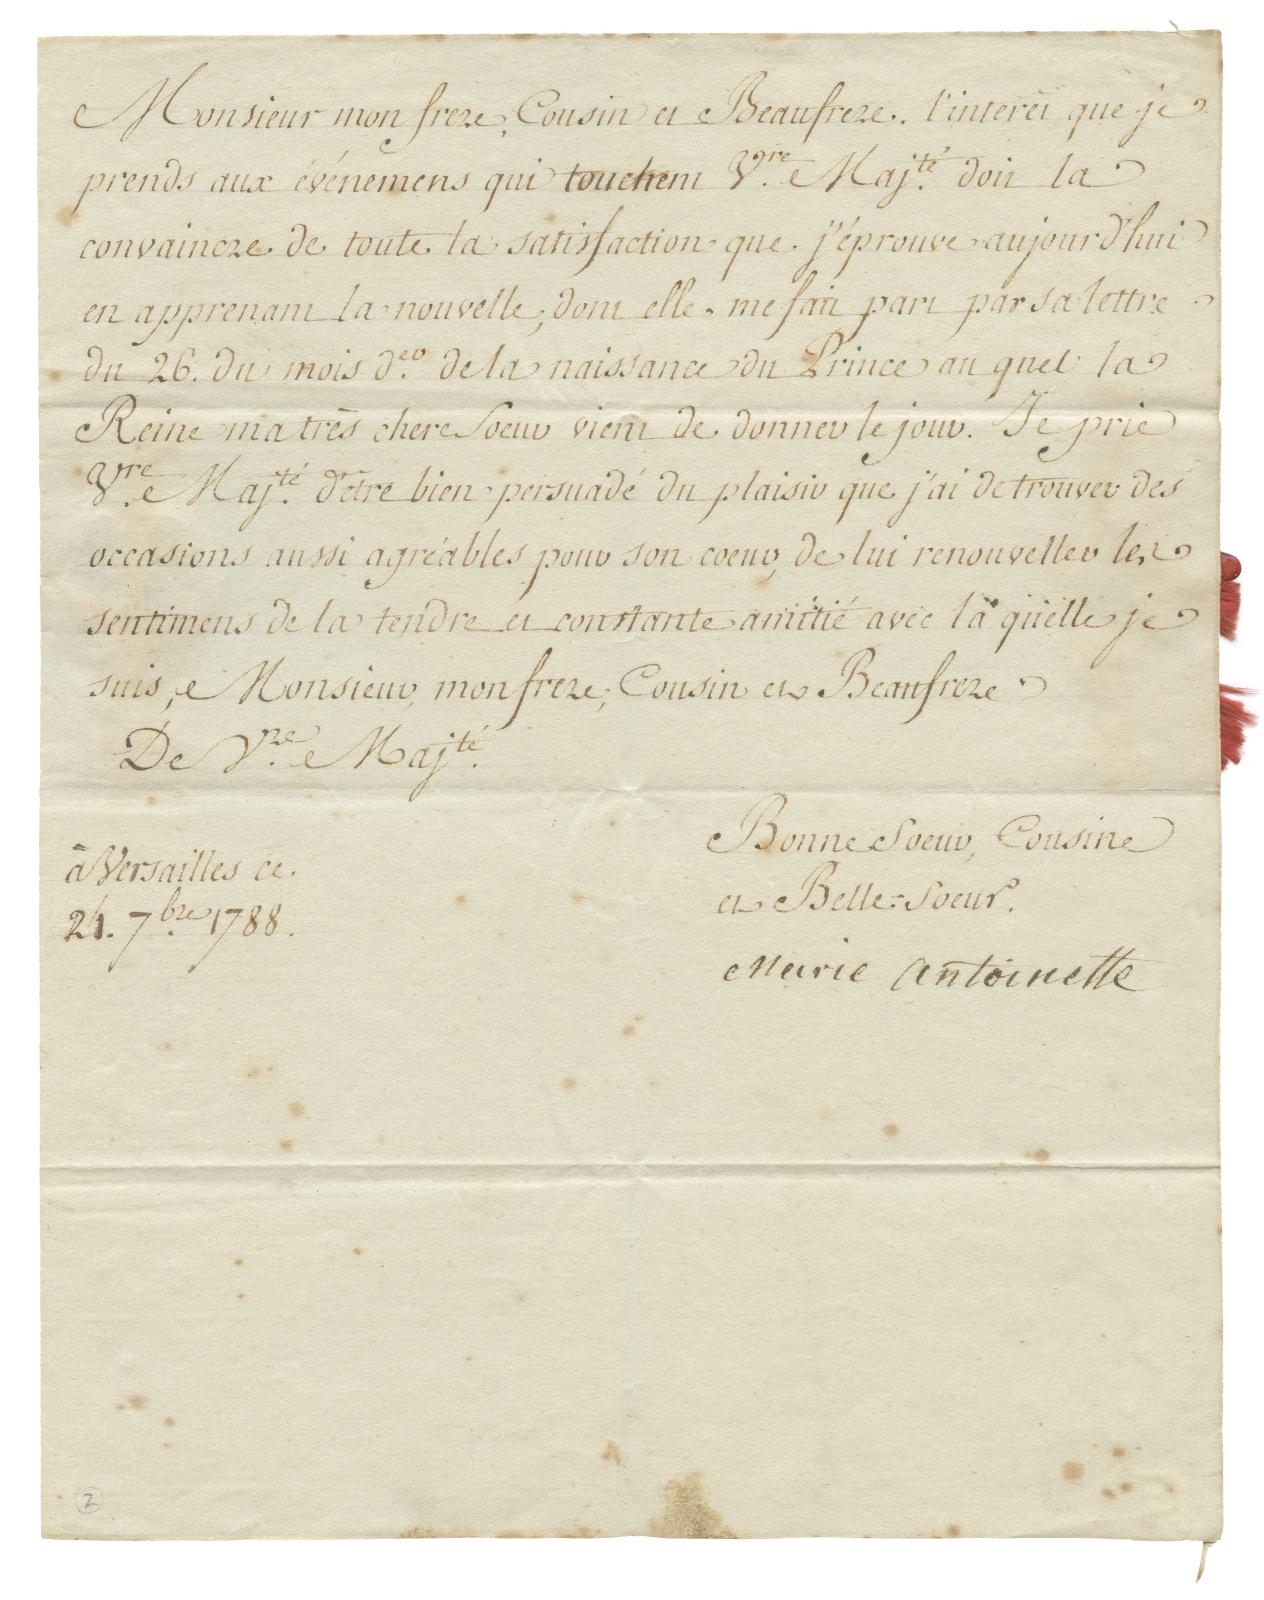 Marie-Antoinette of Austria (1755-1793), letter written by her secretary and signed by her hand addressed to her brother-in-law Ferdinand